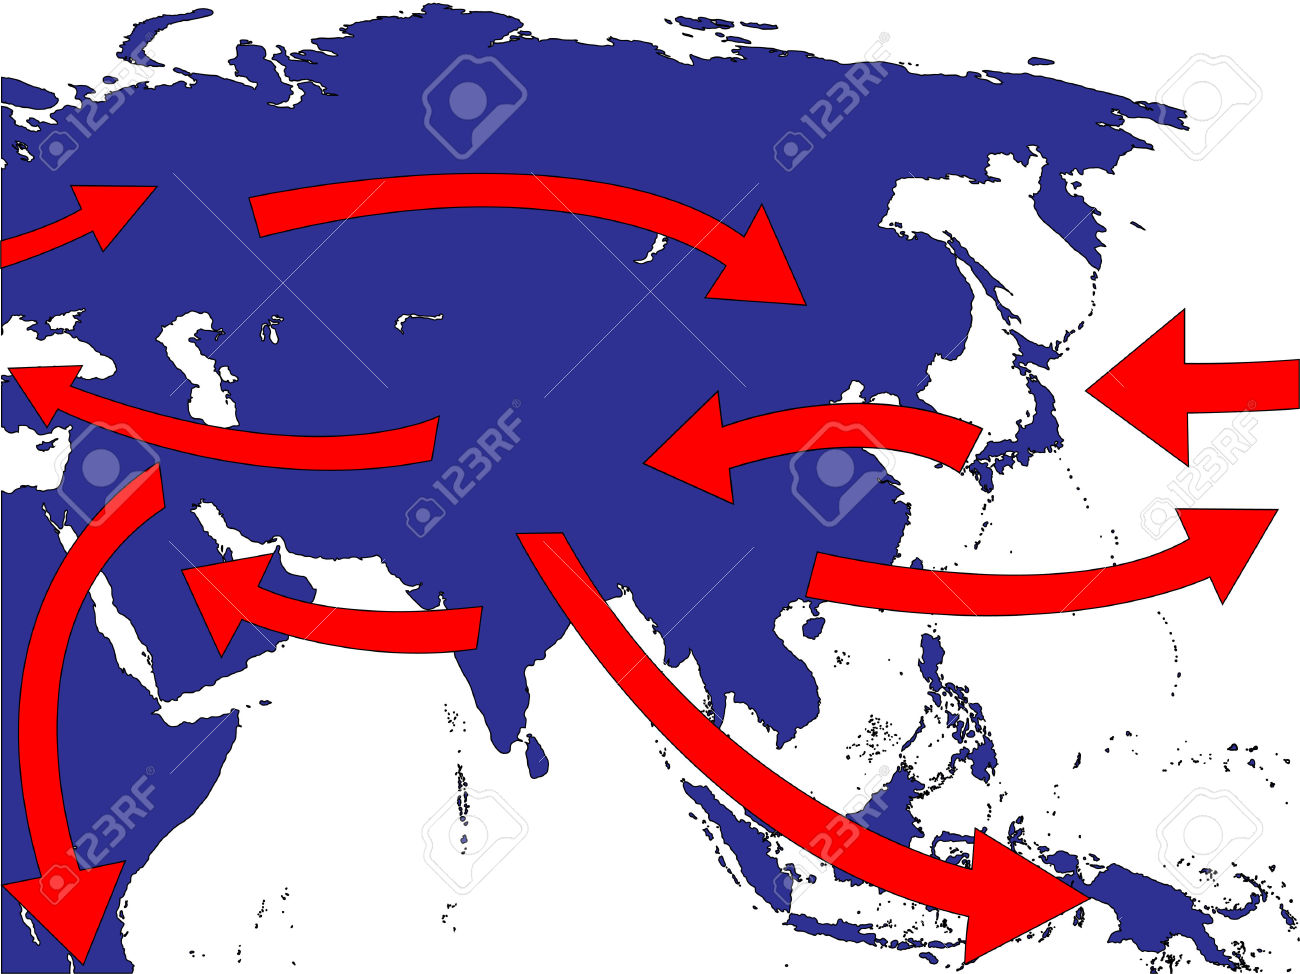 Asia Expansion Market Trade Routes Business Map Royalty Free.